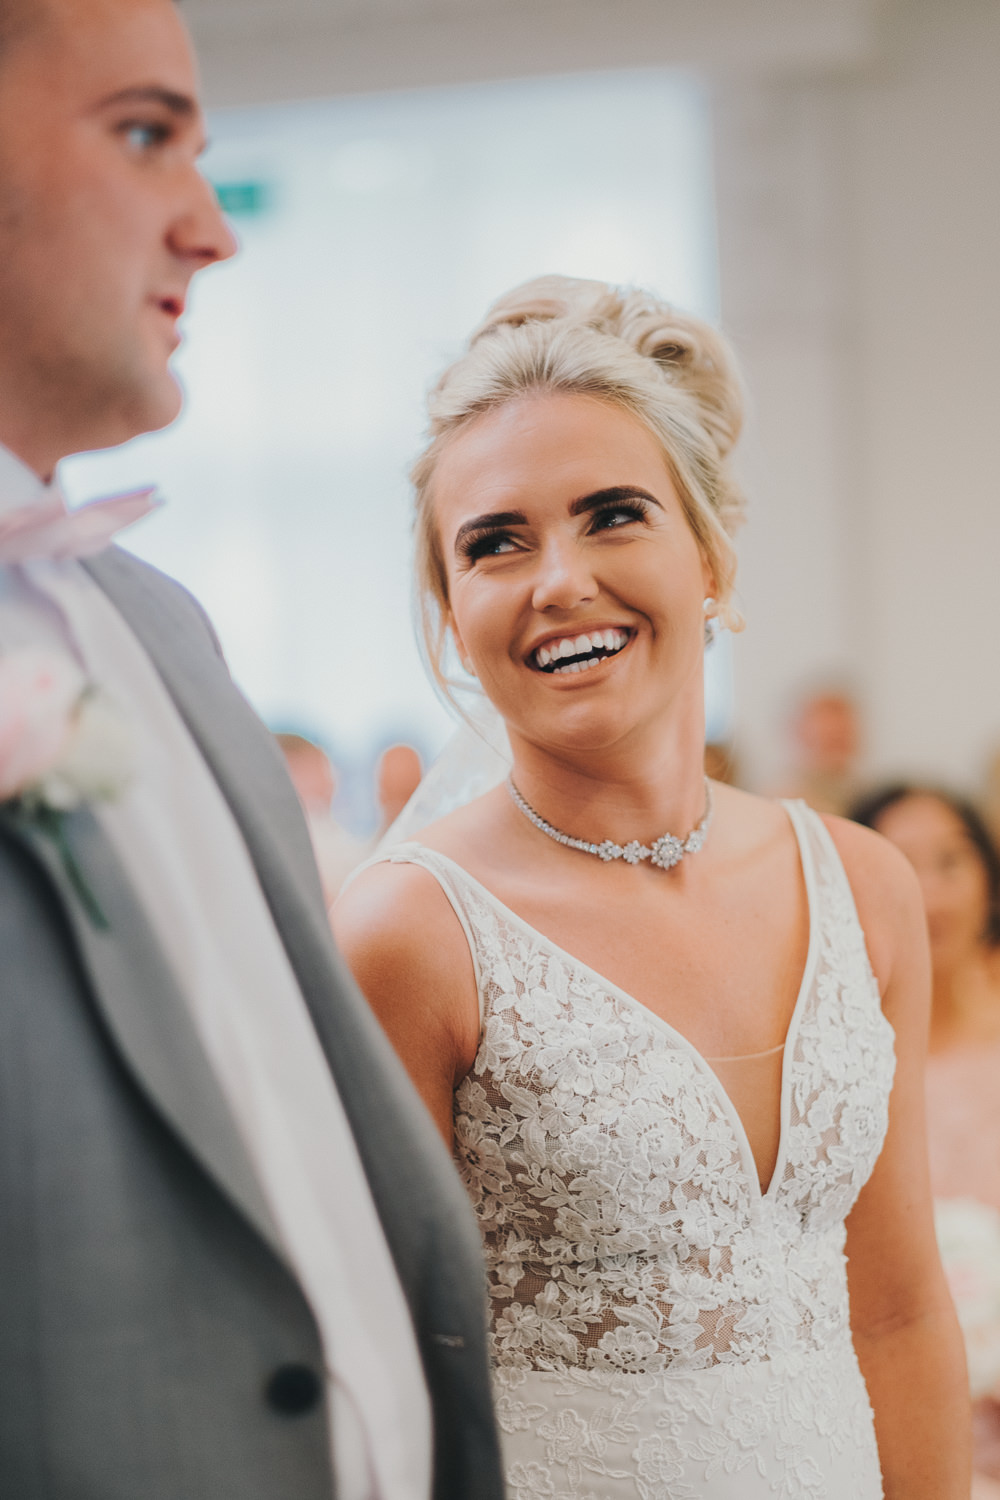 Ceremony Aisle Bride Groom Vows Classic Traditional Elegant | Ashfield House Wedding Kate McCarthy Photography